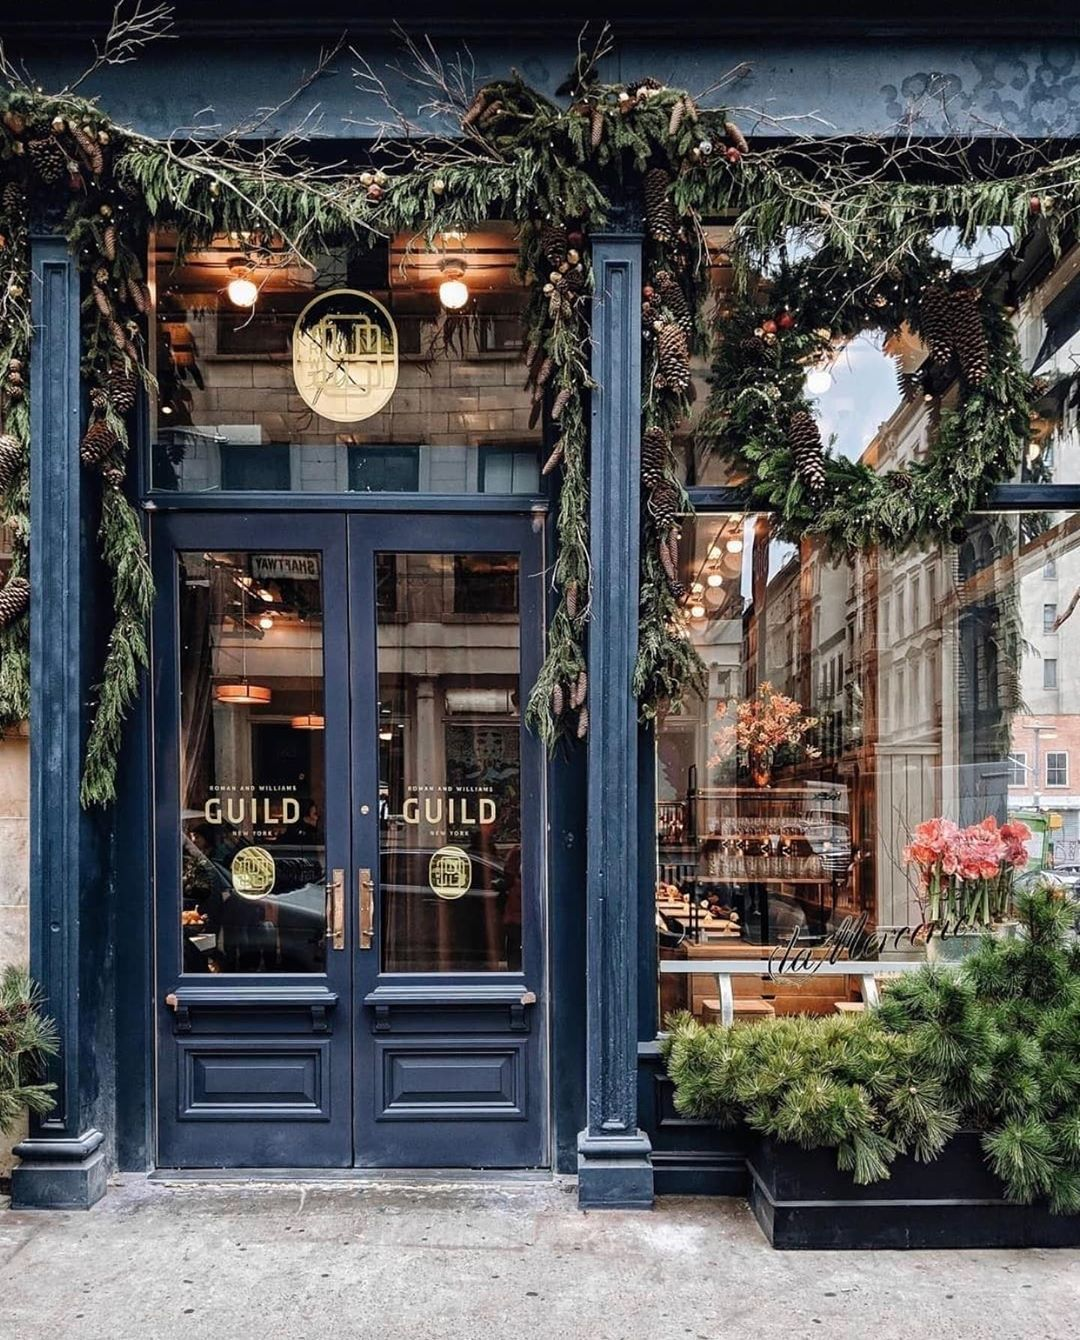 The Francophiles On Instagram Nyc Within The Dreamy Design World Of Rwguild In Soho Lies A French Cafe Lead By Renowned In 2020 Cafe Window Shop Facade Cafe Decor